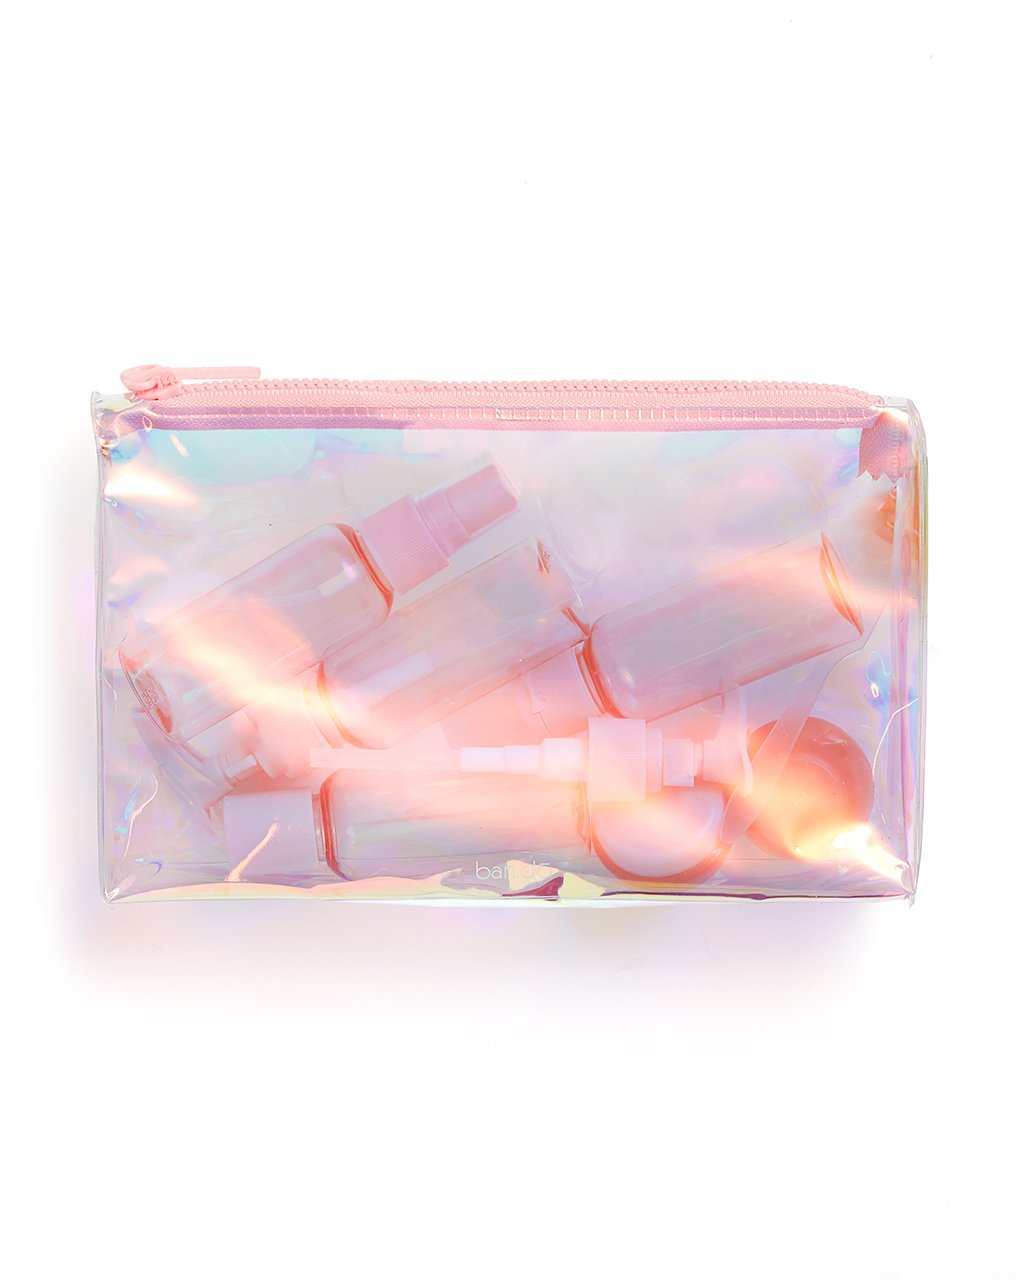 The Getaway Travel Kit comes in a translucent pink pearlescent color.